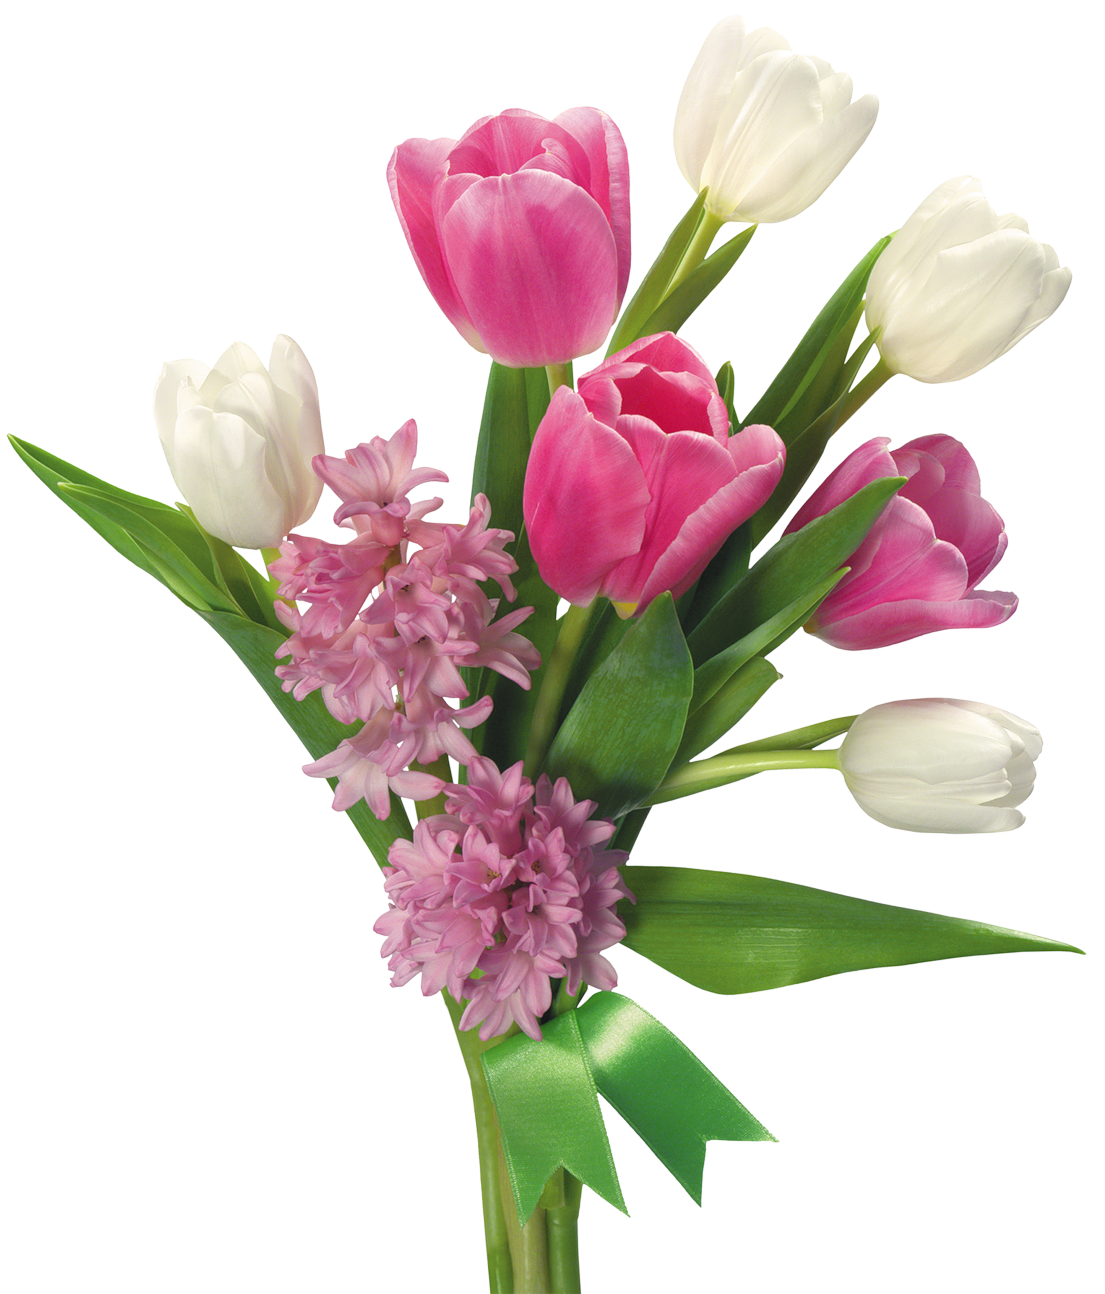 Flowers Bouquet PNG Image